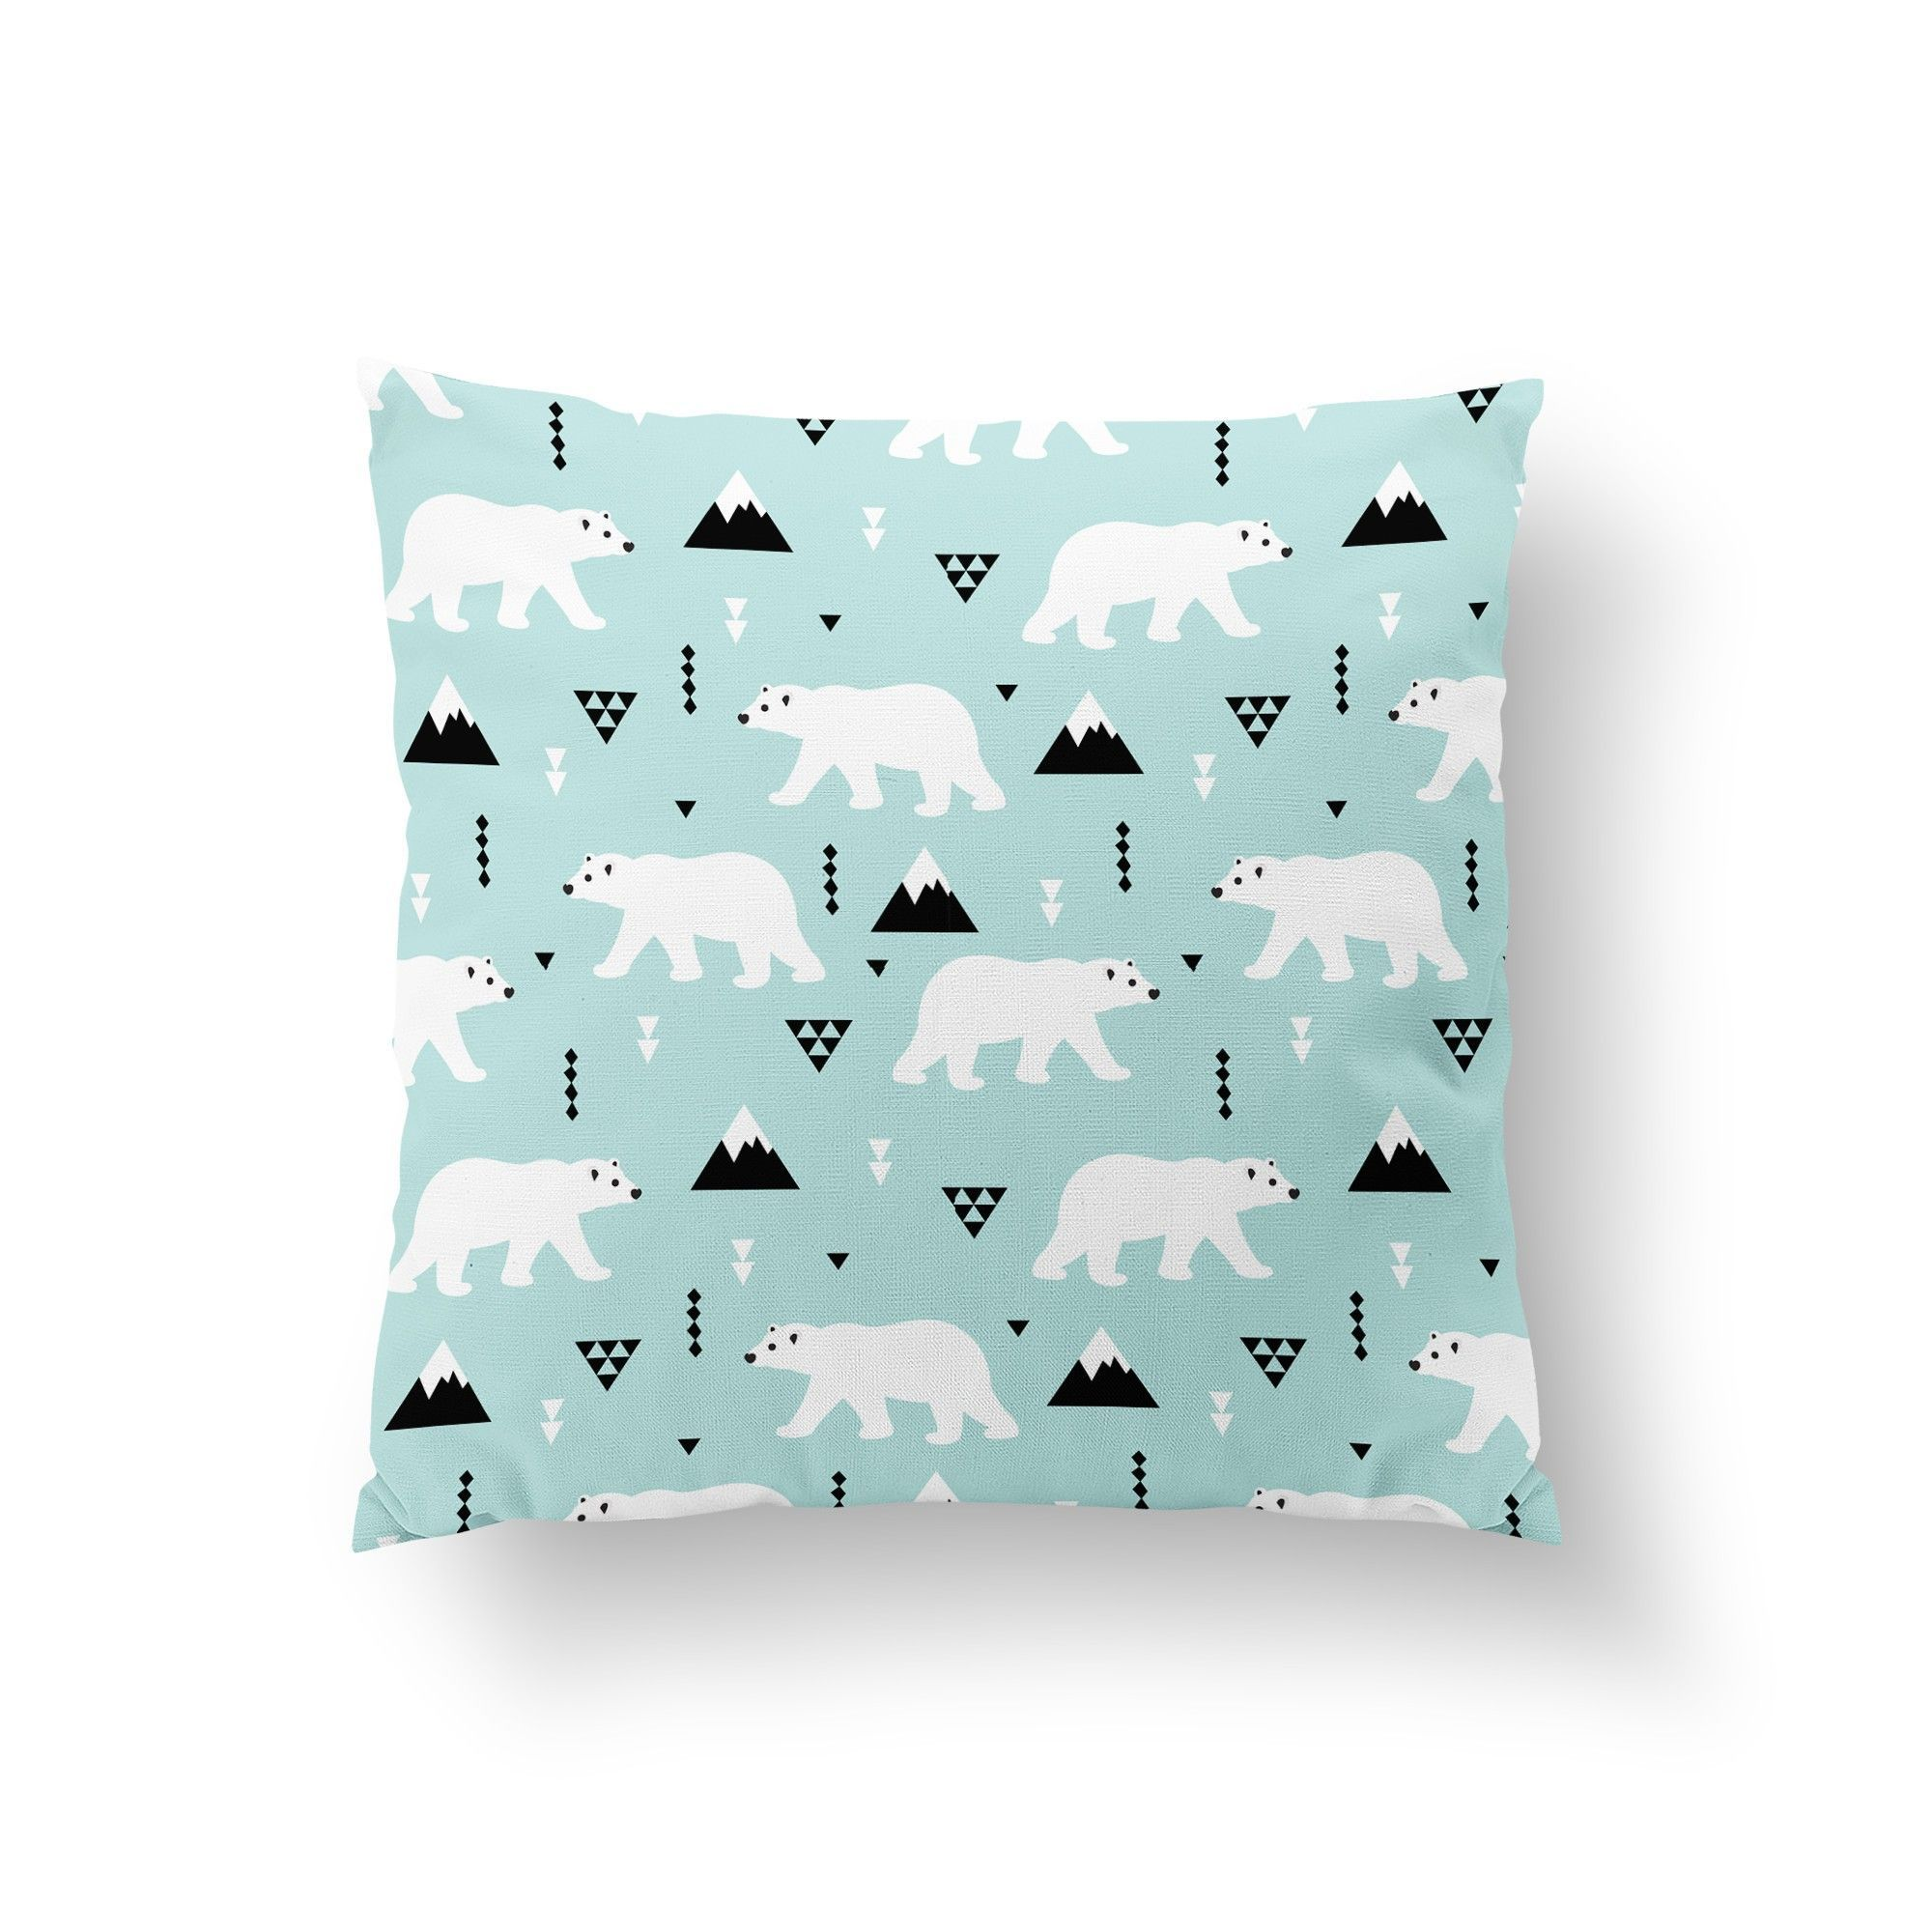 Polar Bear Throw Pillow : Polar Bear Throw Pillow Reese s VT bedroom Pinterest Polar bear, Throw pillows and Pillows